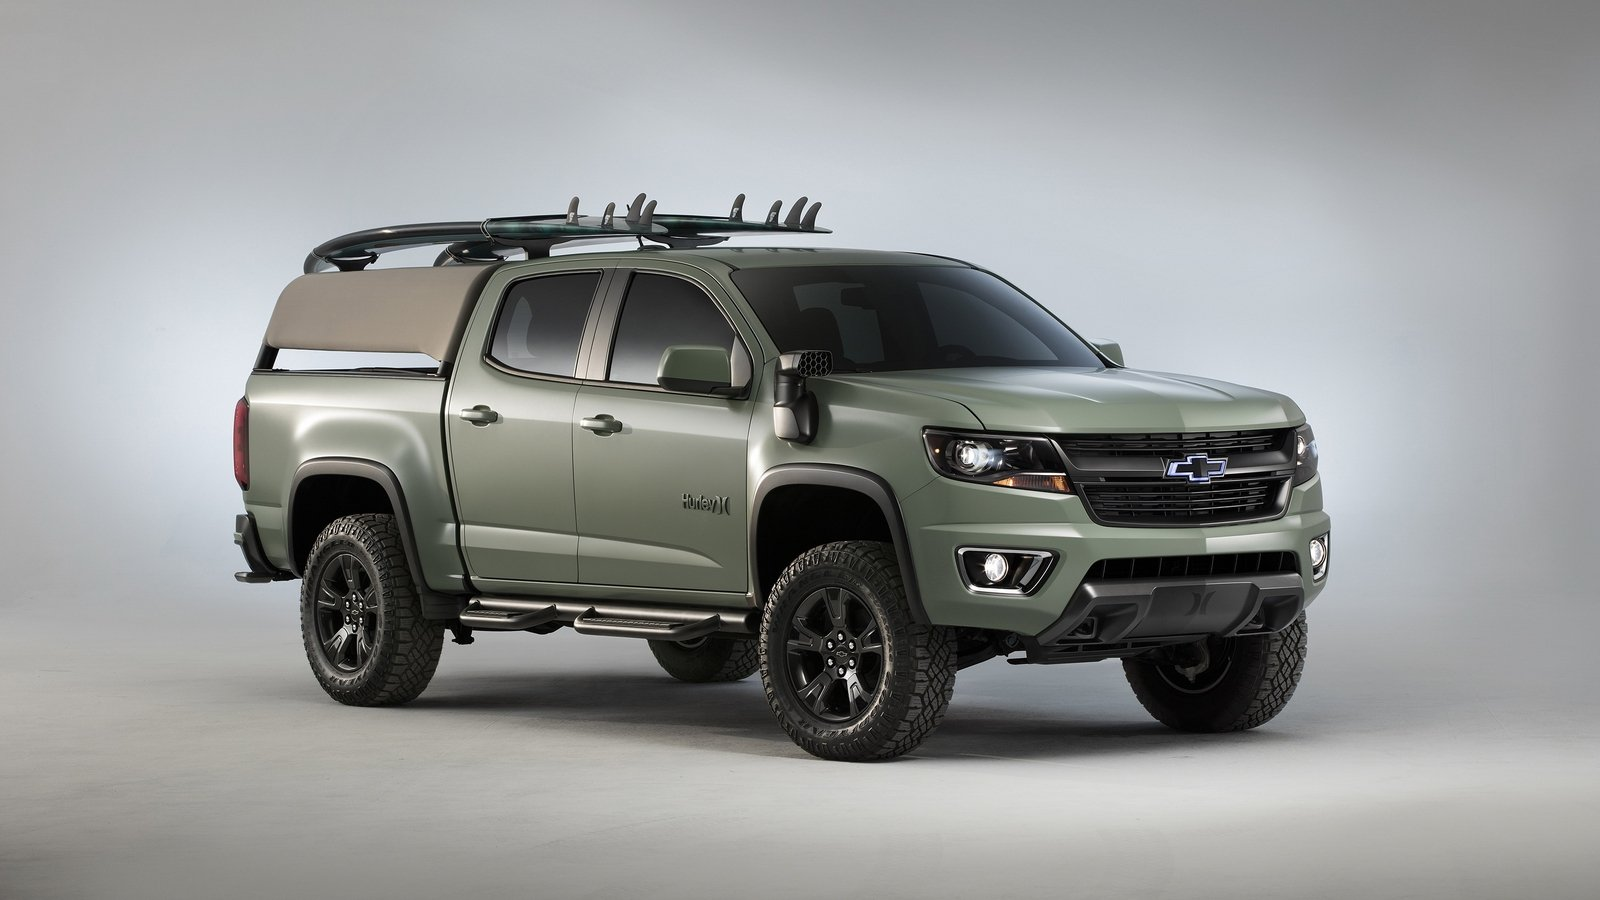 2016 Chevrolet Colorado Z71 Hurley Concept Picture 694072 Truck Review Top Speed